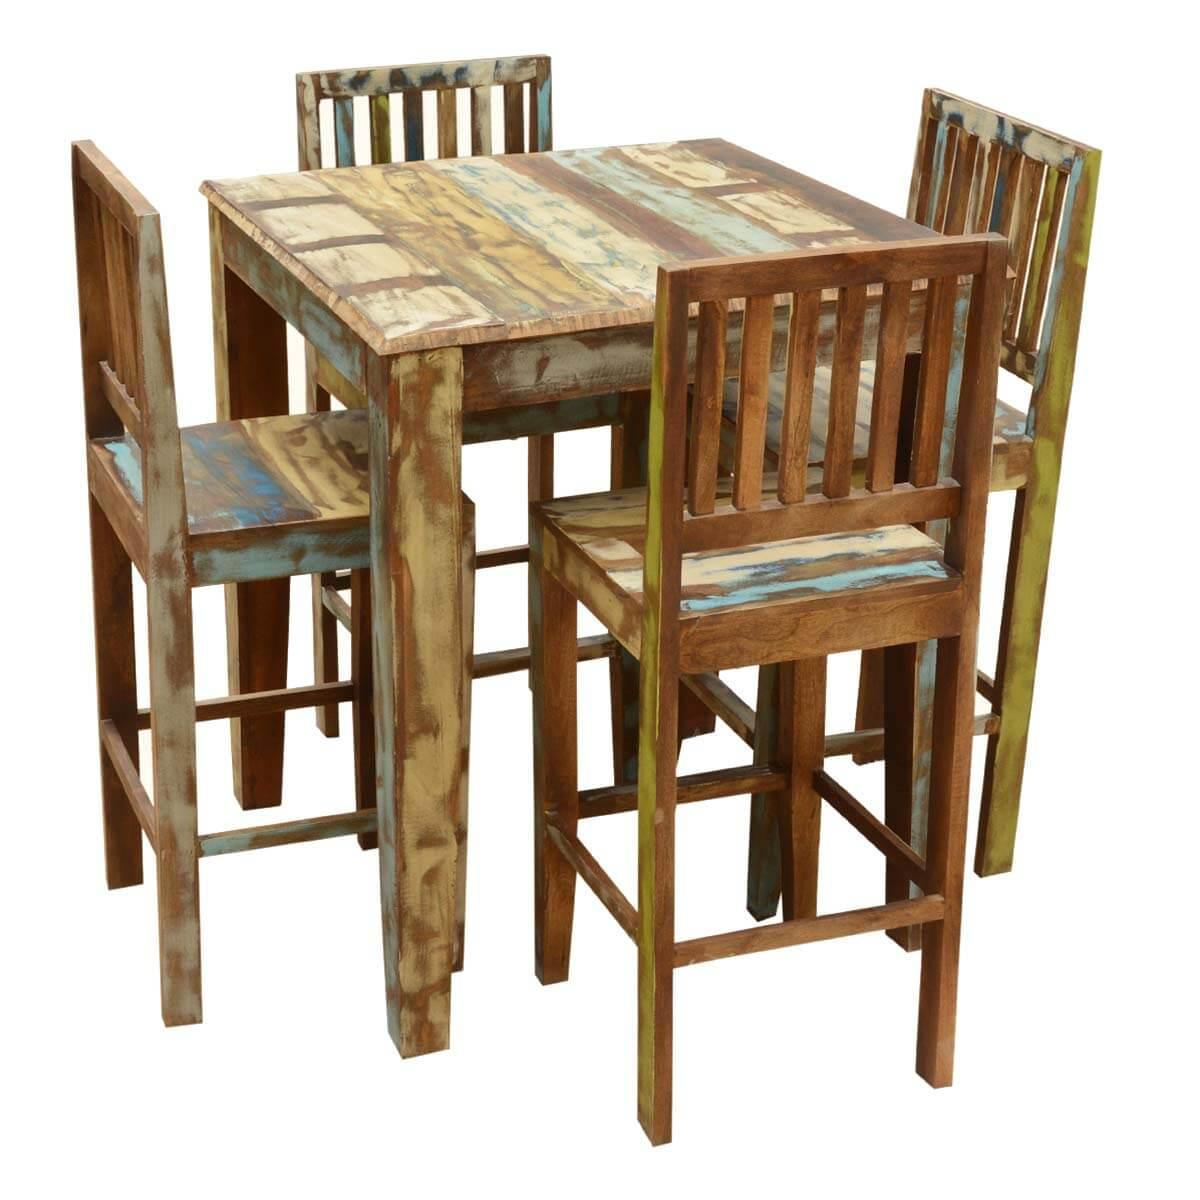 high bar table and chair set exam with stirrups appalachian rustic reclaimed wood